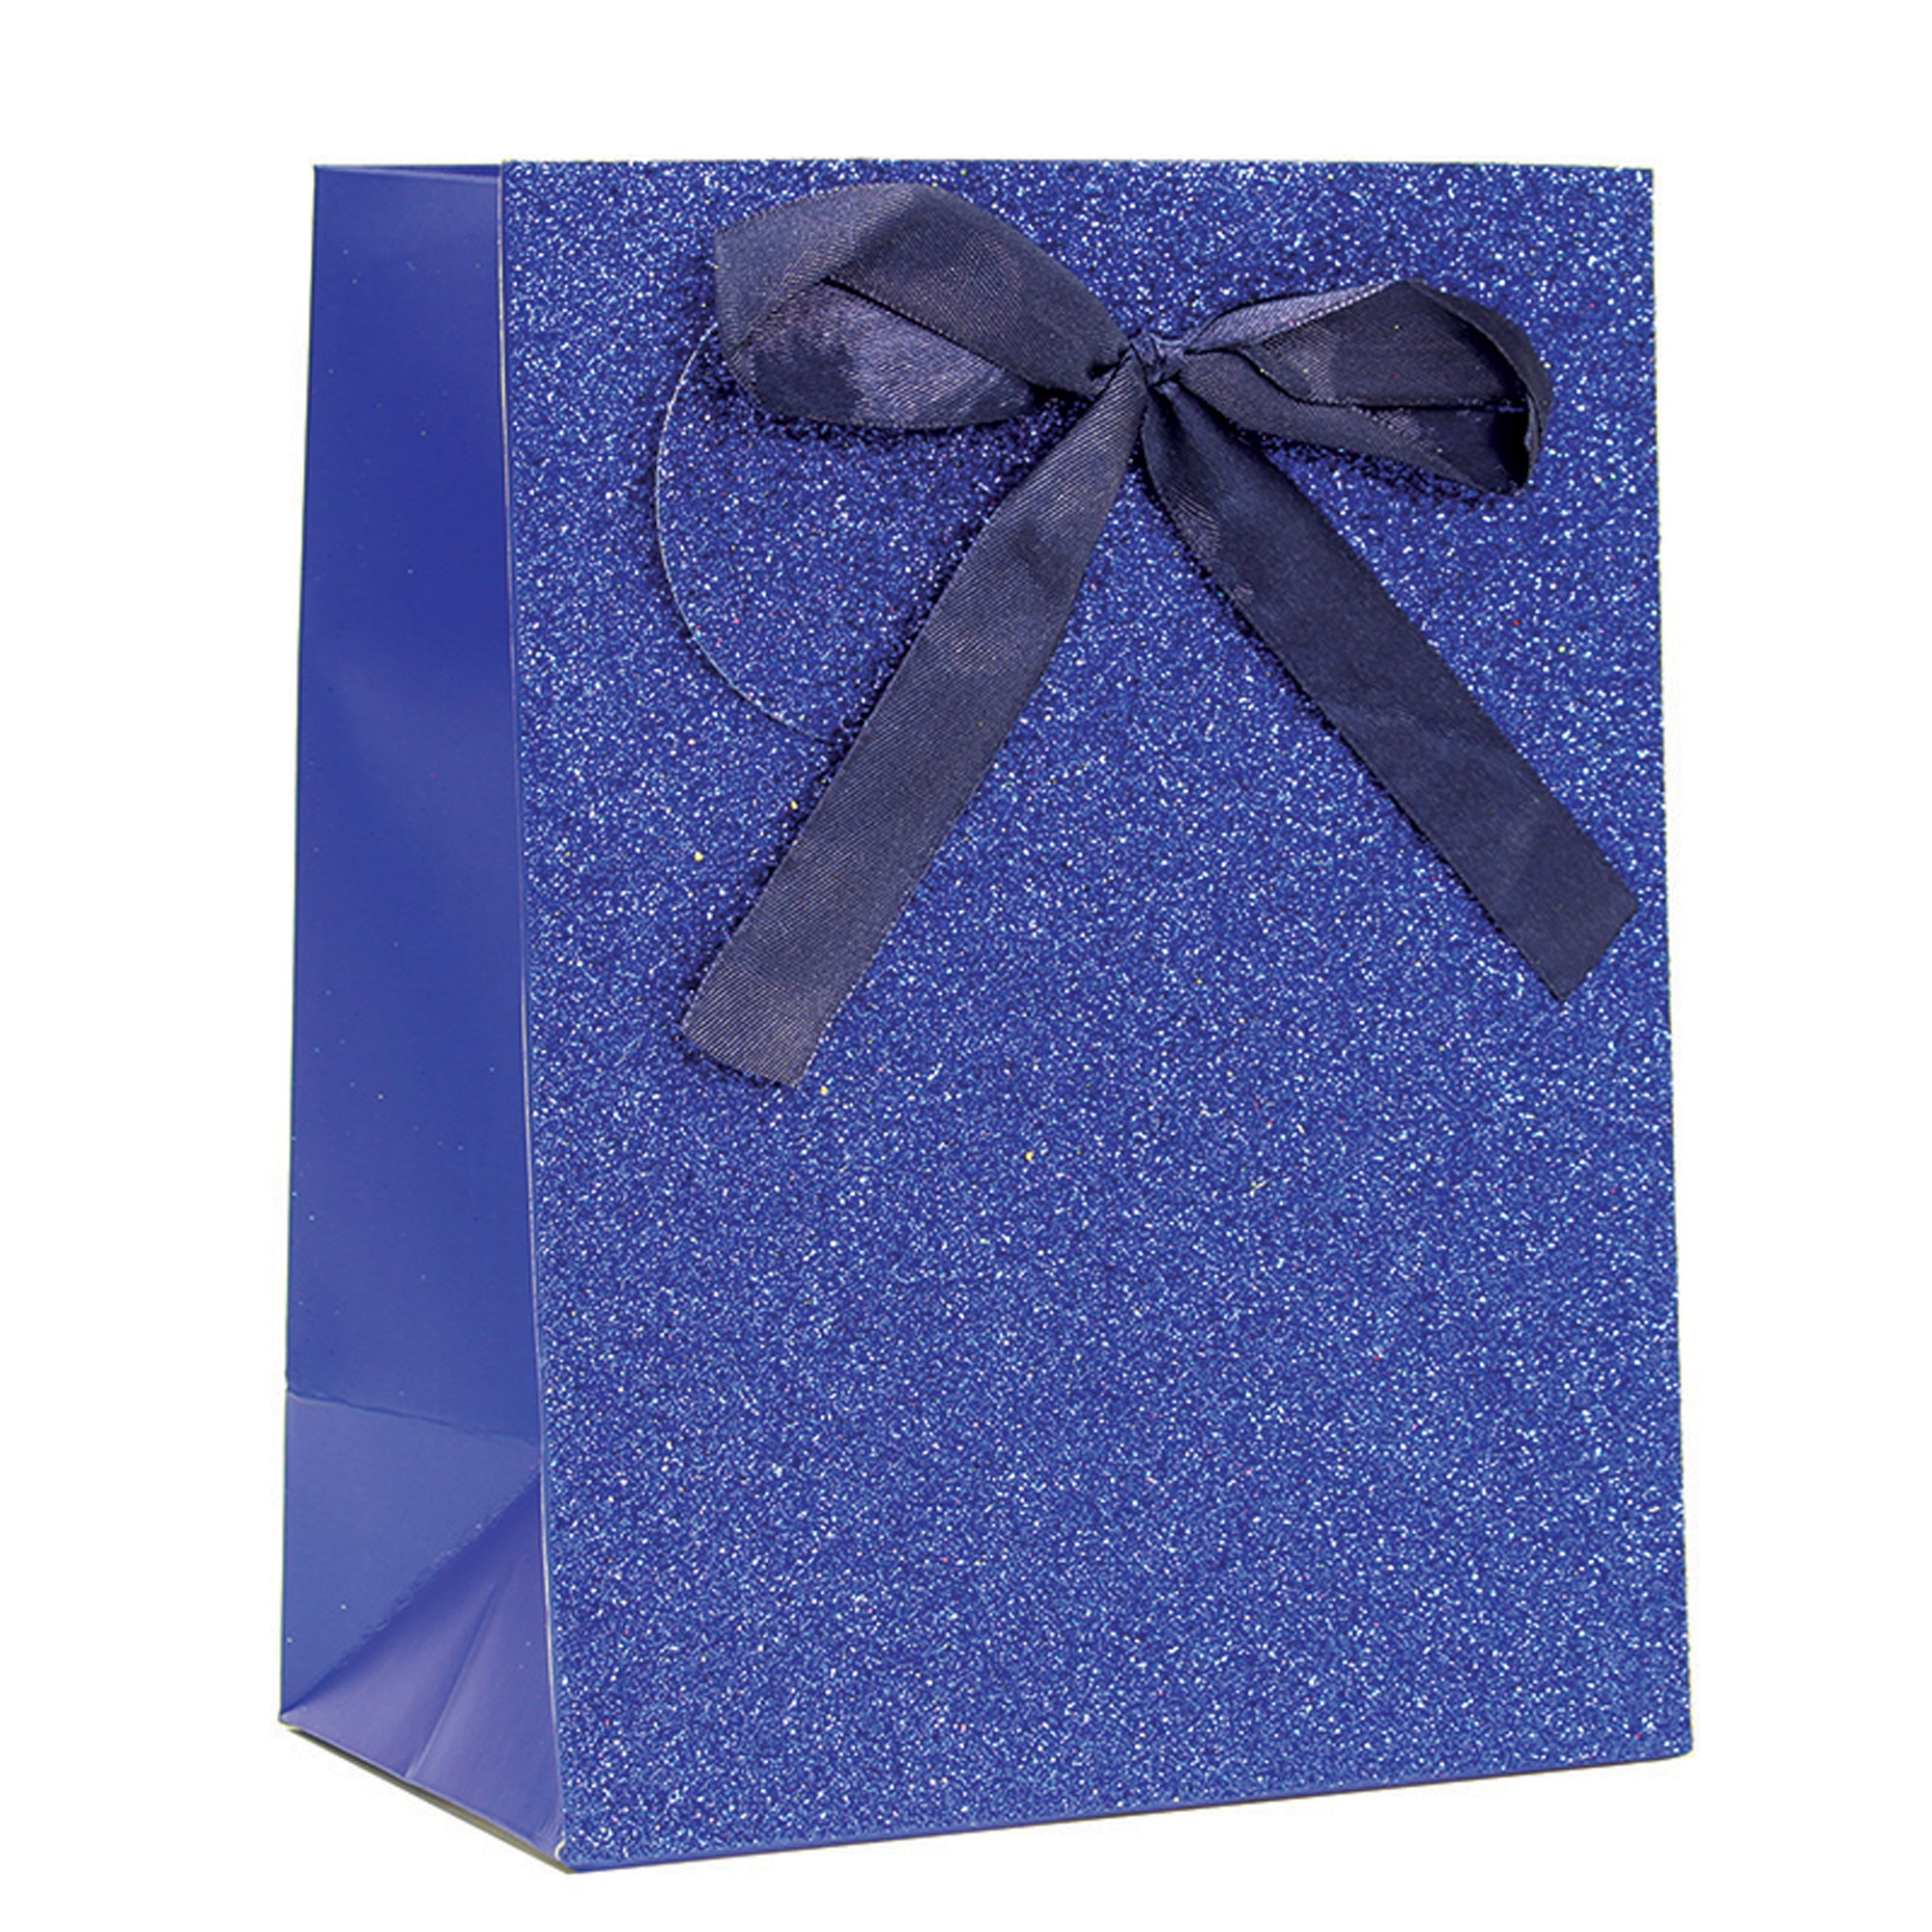 ROYAL BLUE SPARKLE GLITTER GIFT BAG